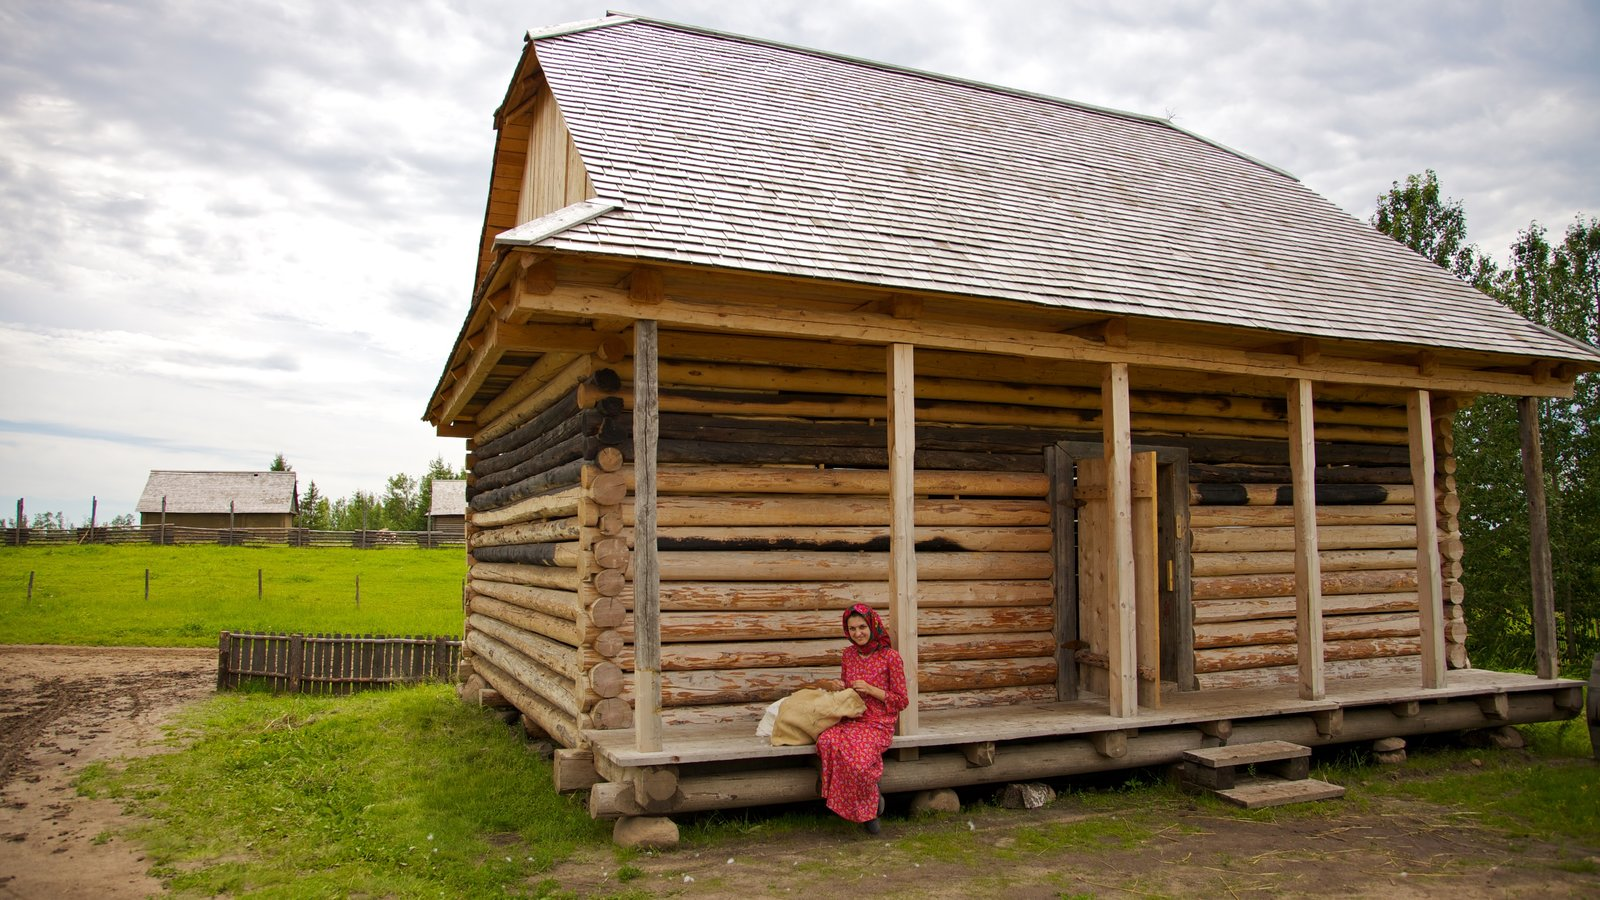 Ukrainian Cultural Heritage Village showing heritage architecture, a small town or village and farmland